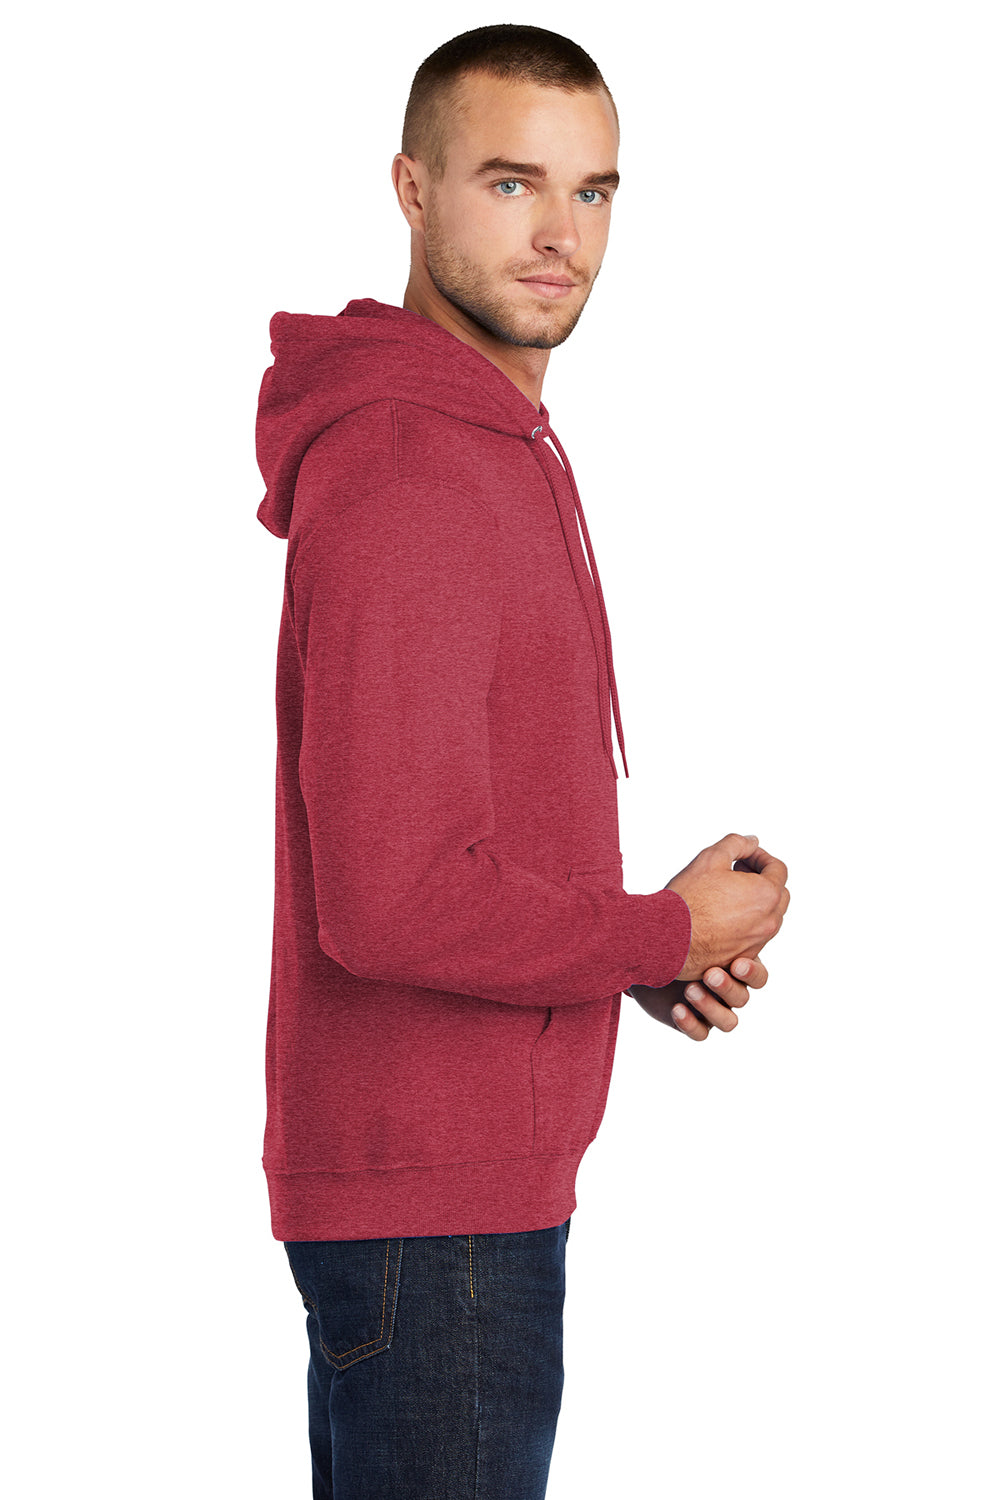 Port & Company PC78H Mens Core Fleece Hooded Sweatshirt Hoodie Heather Red Side